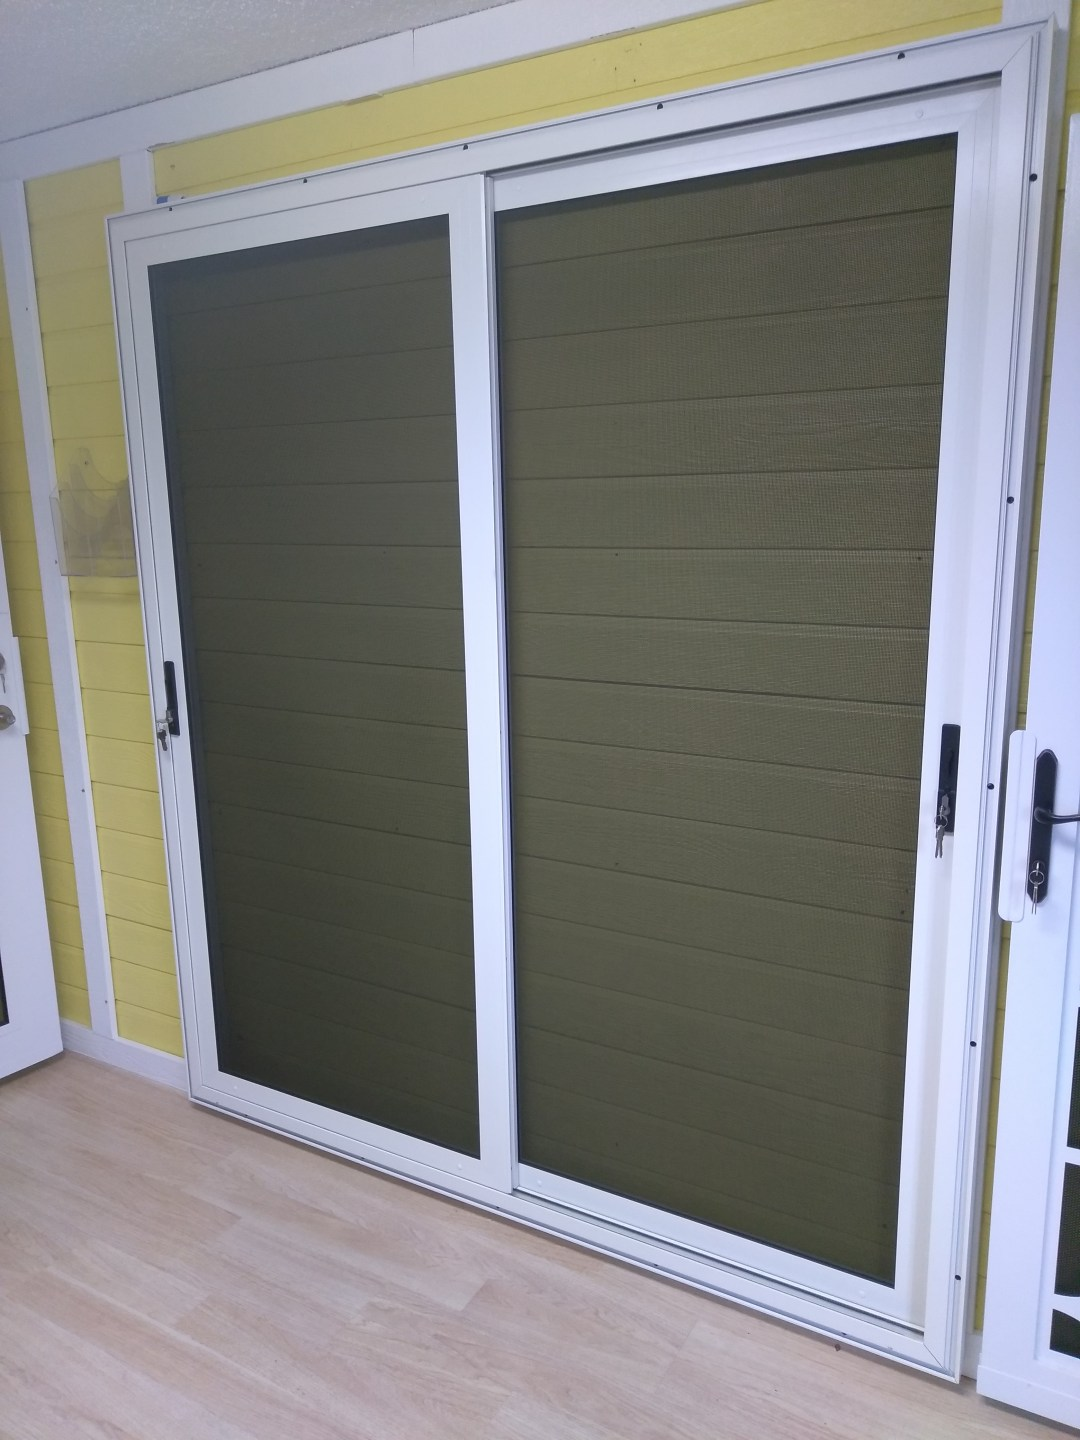 MESHTEC SLIDING SECURITY DOOR